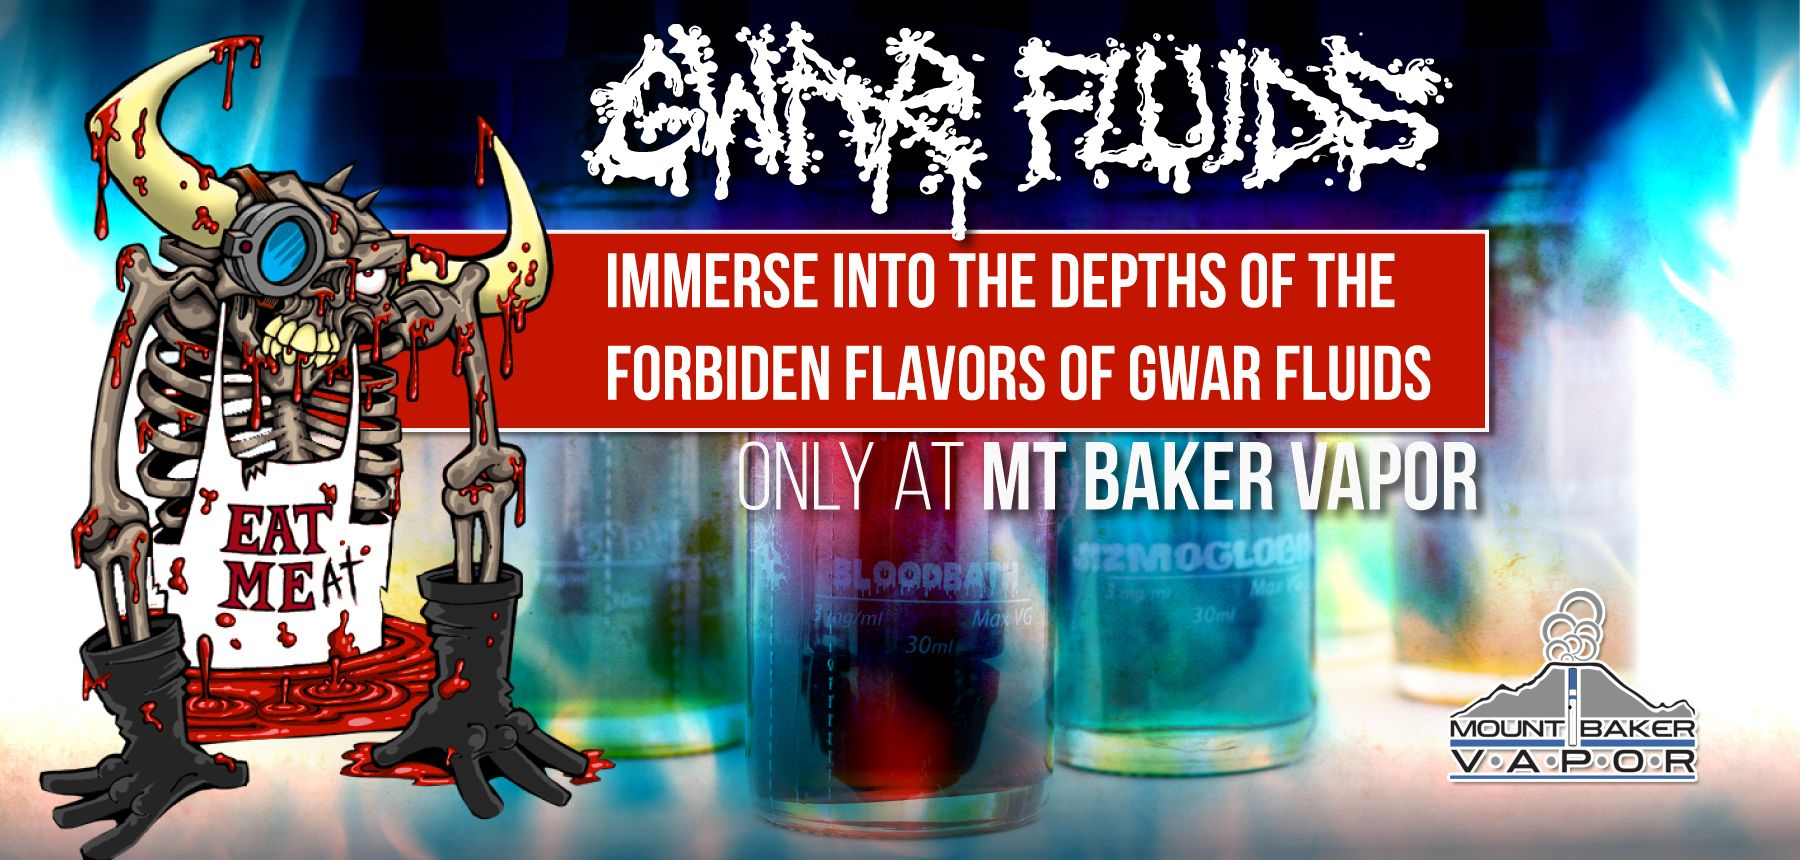 MtBaker Immerse Into The Detpths Of the Forbidden Flavors Of